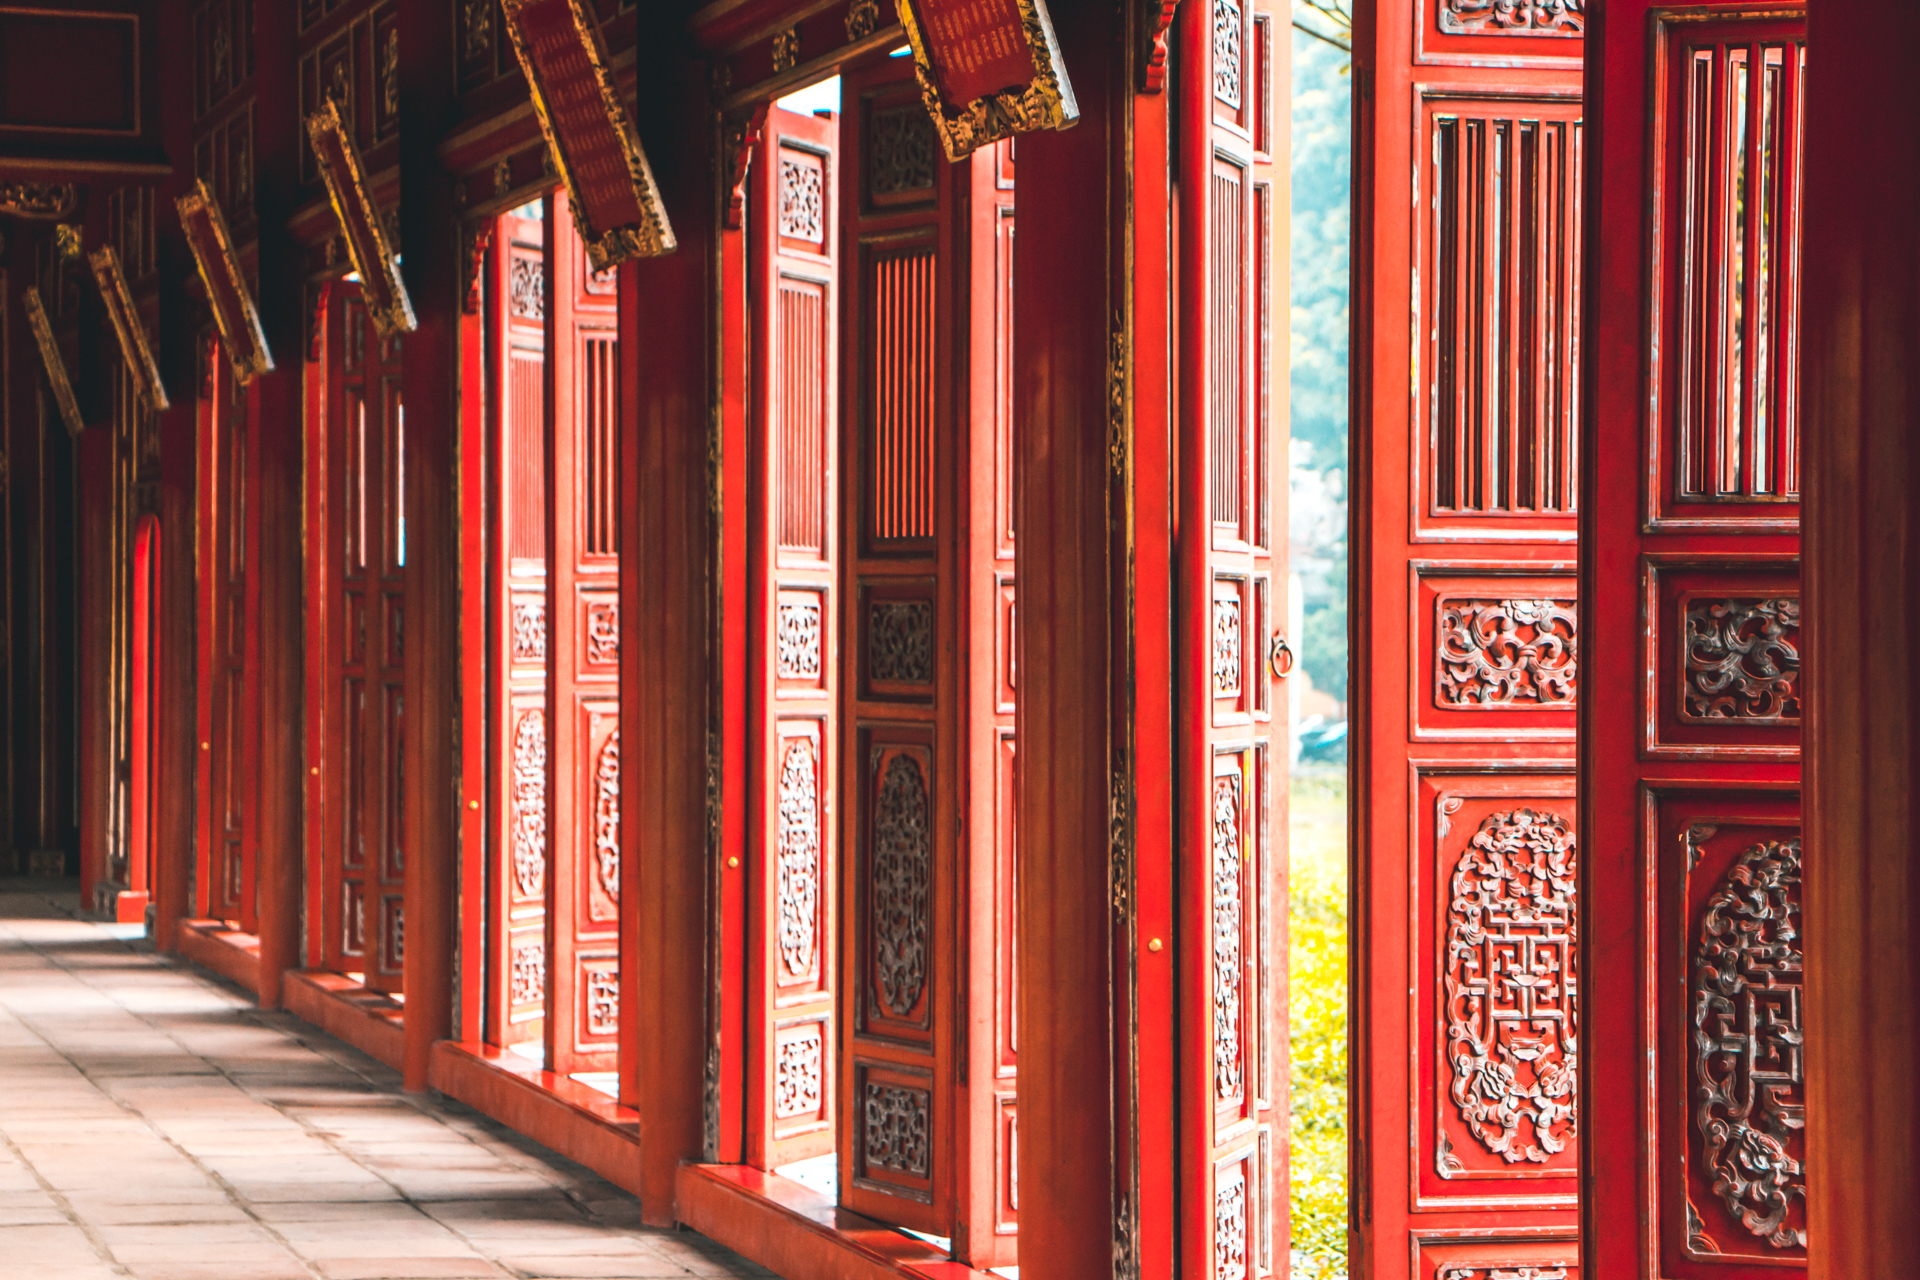 Vibrant Red Traditional Doors in Hue Citadel, Vietnam